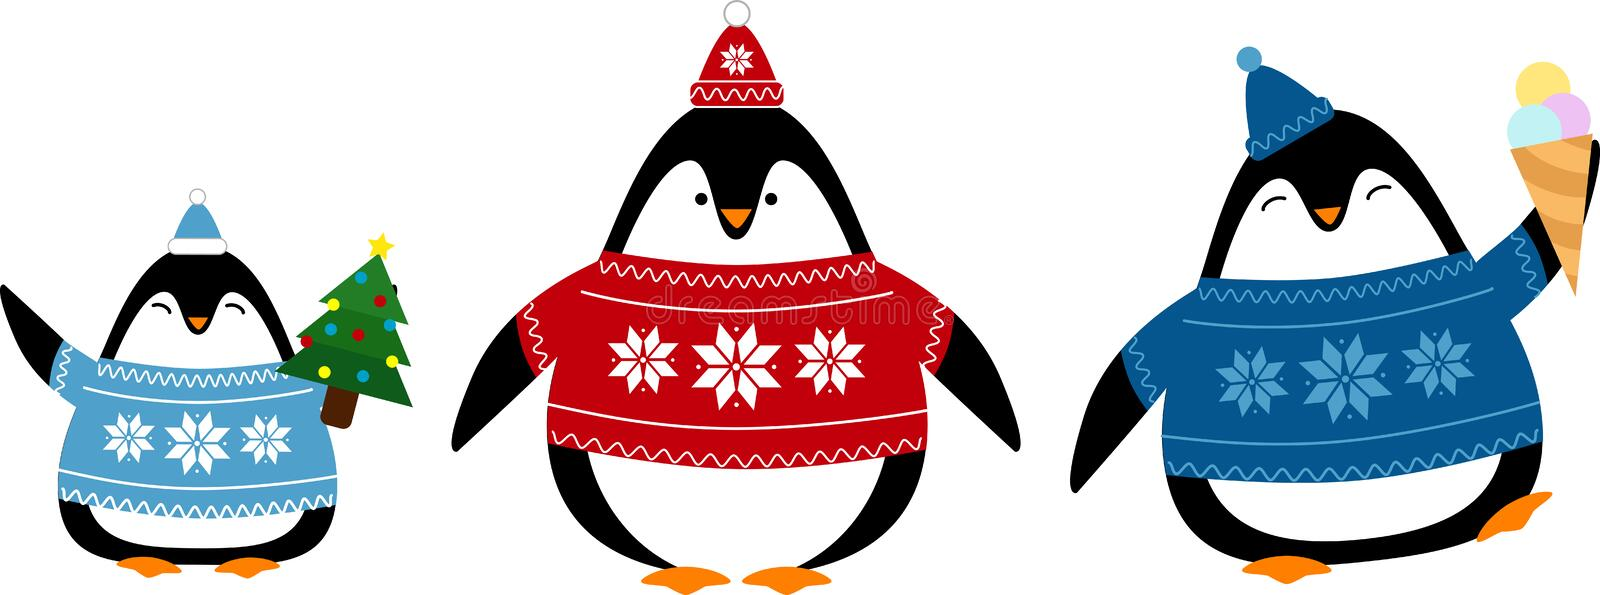 Set of cute penguins in sweaters and hats royalty free illustration